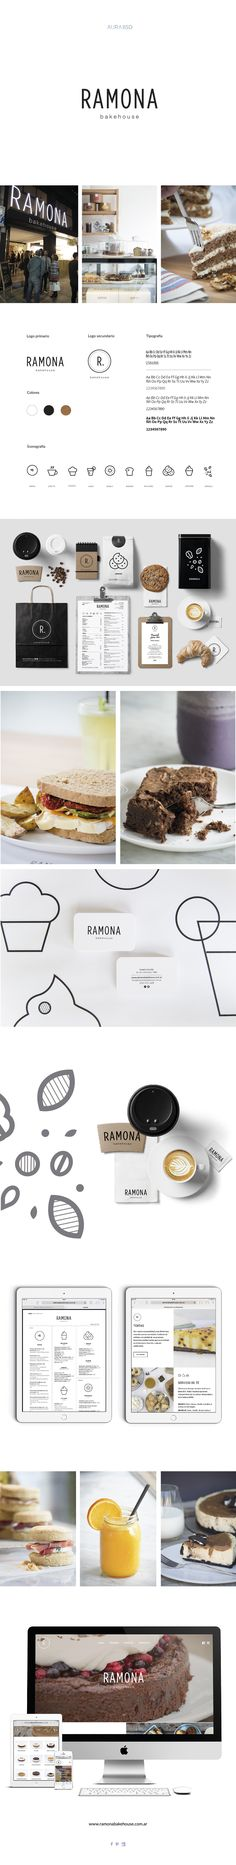 Design / Branding / Strategy / Photography / Web design / Bakehouse / Coffee shop